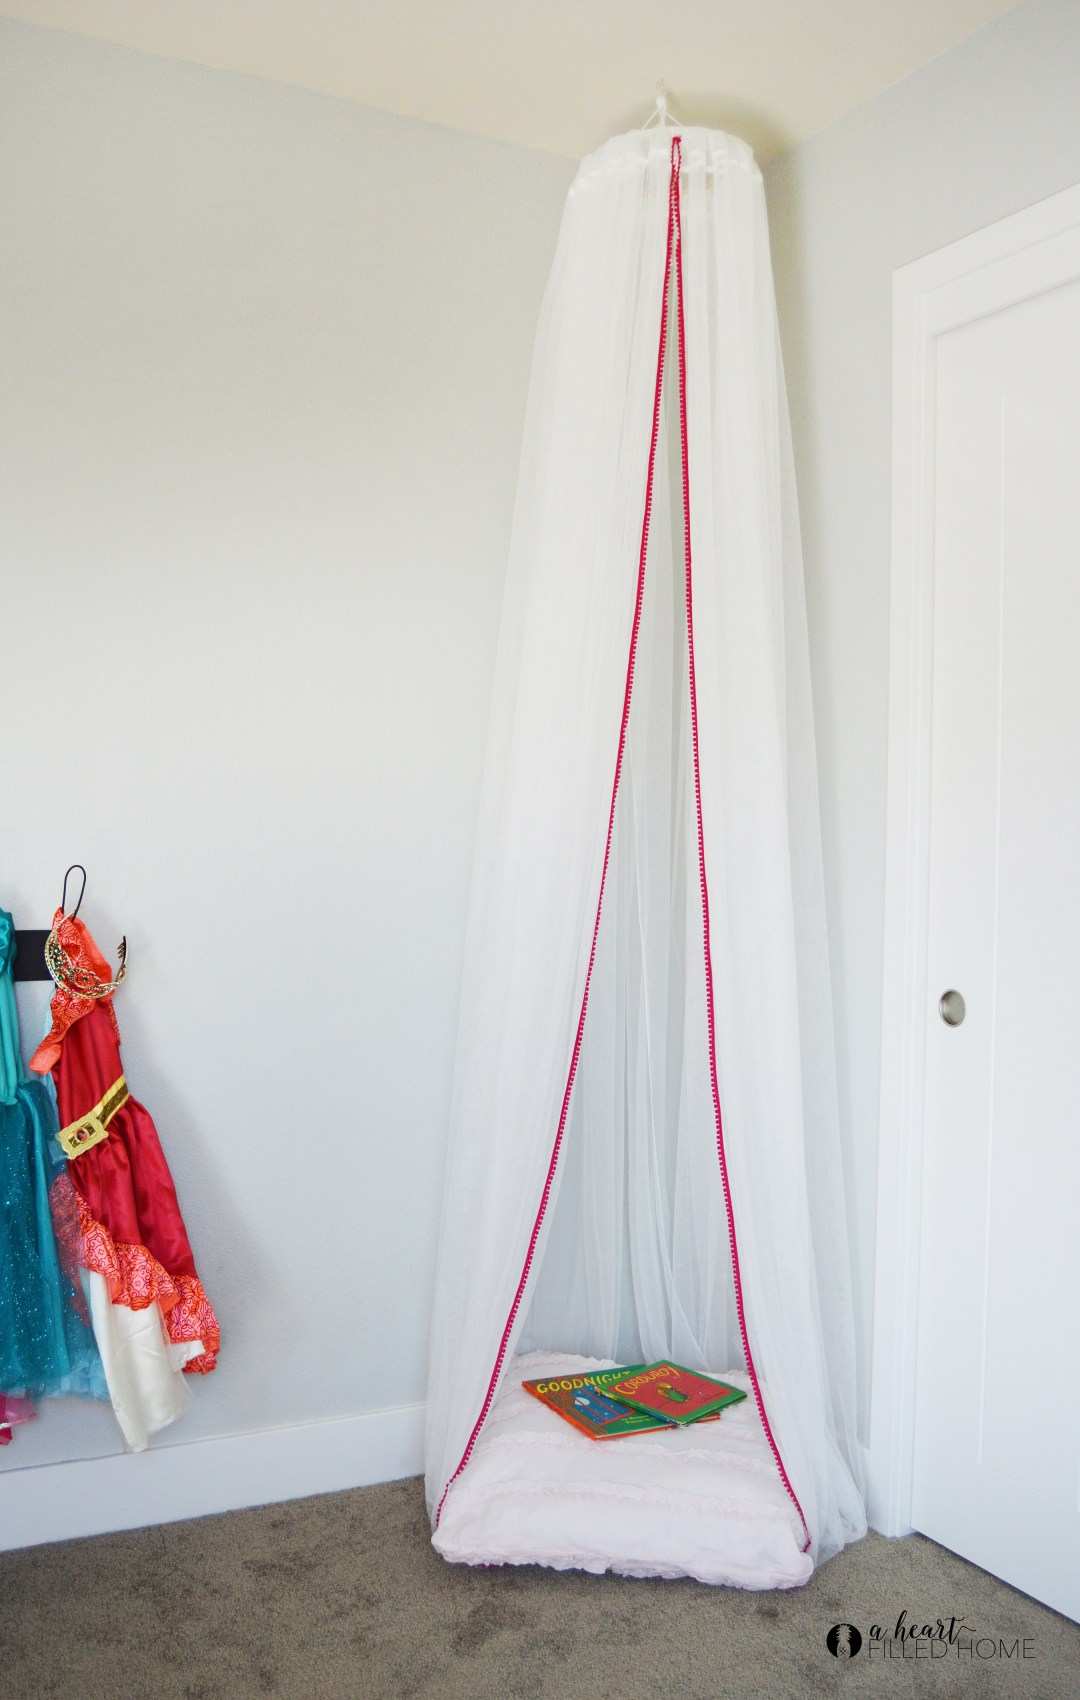 How to make an easy DIY canopy! Visit aheartfilledhome.com for the simple DIY tutorial!